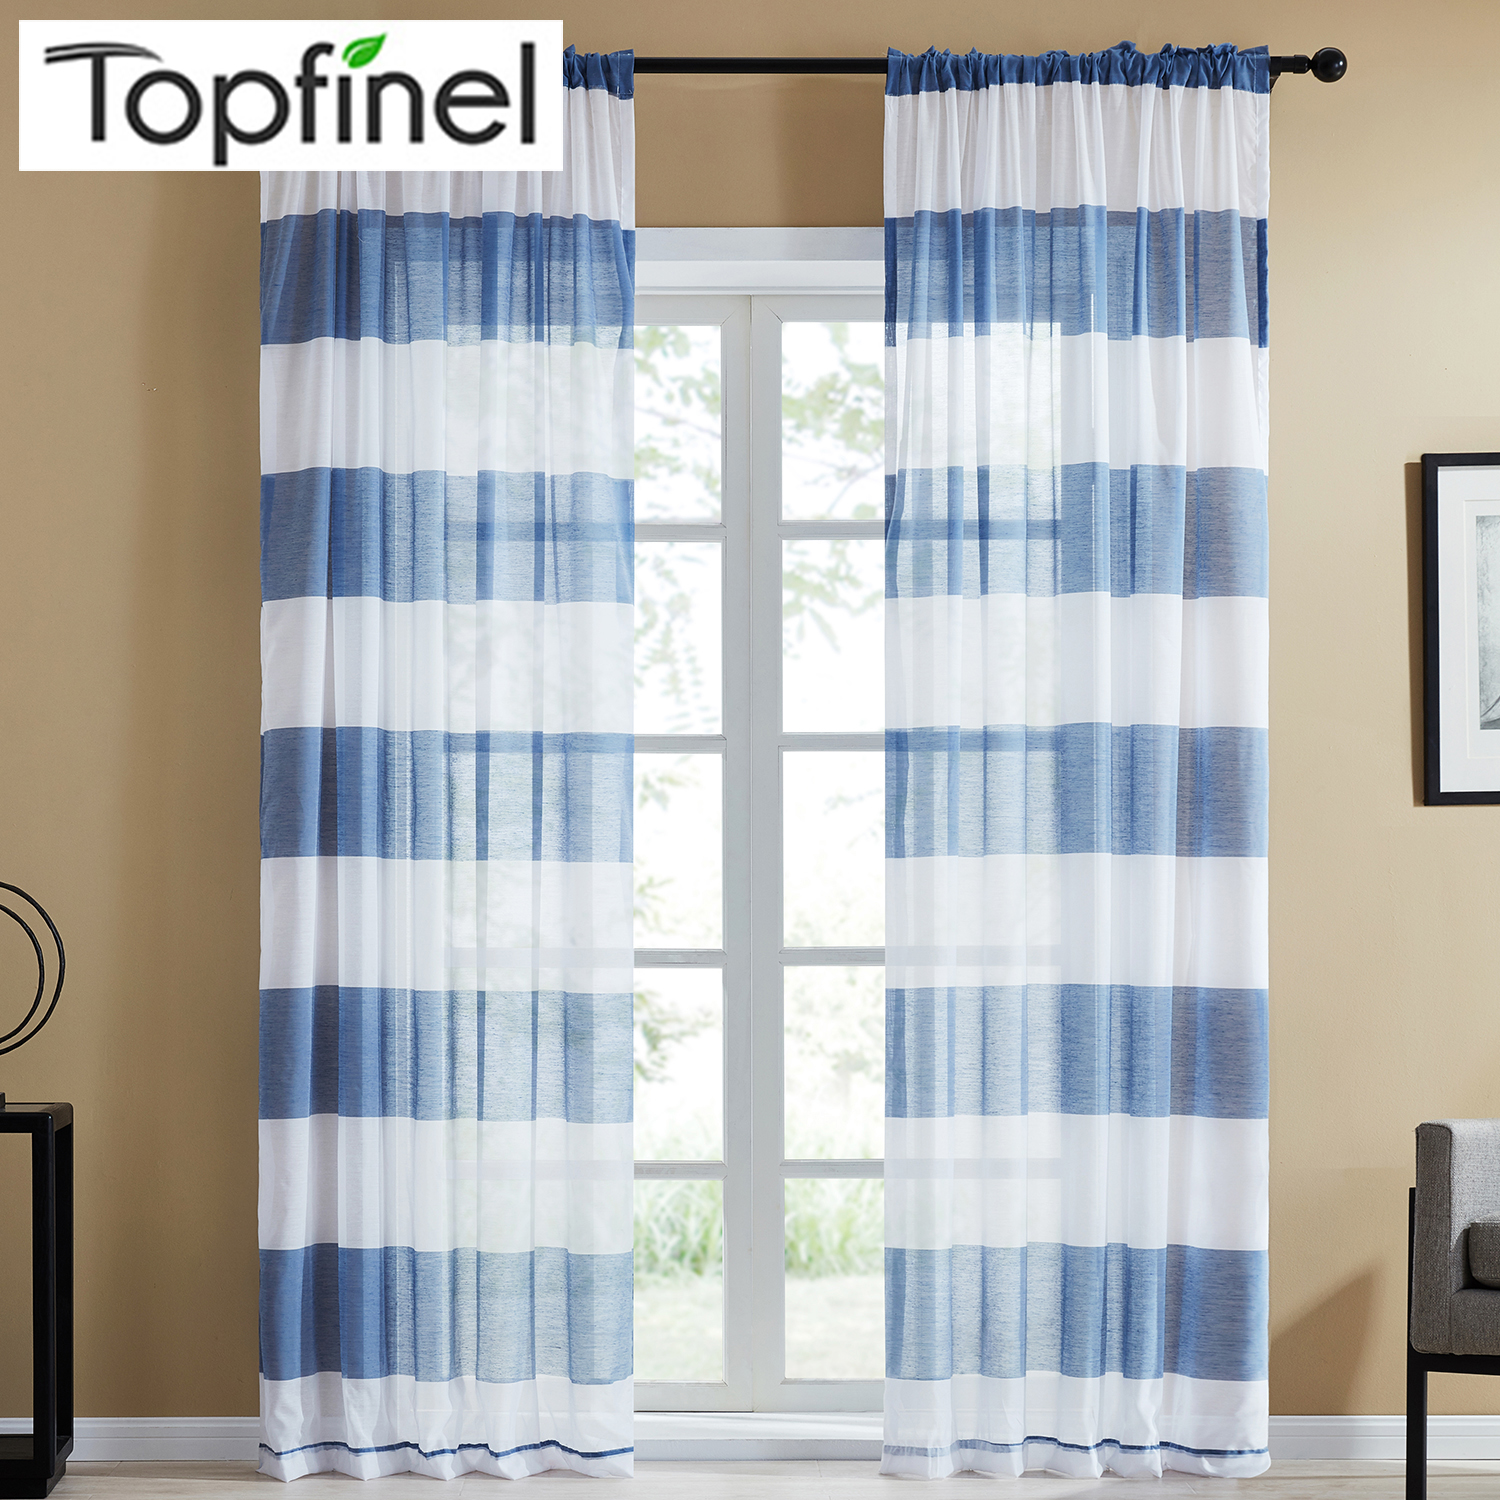 Topfinel Dark Gray Semi Voile Sheer Curtains For Bedroom Kitchen Living Room Stripe Home Decorative Tulle On Windows 5 Color